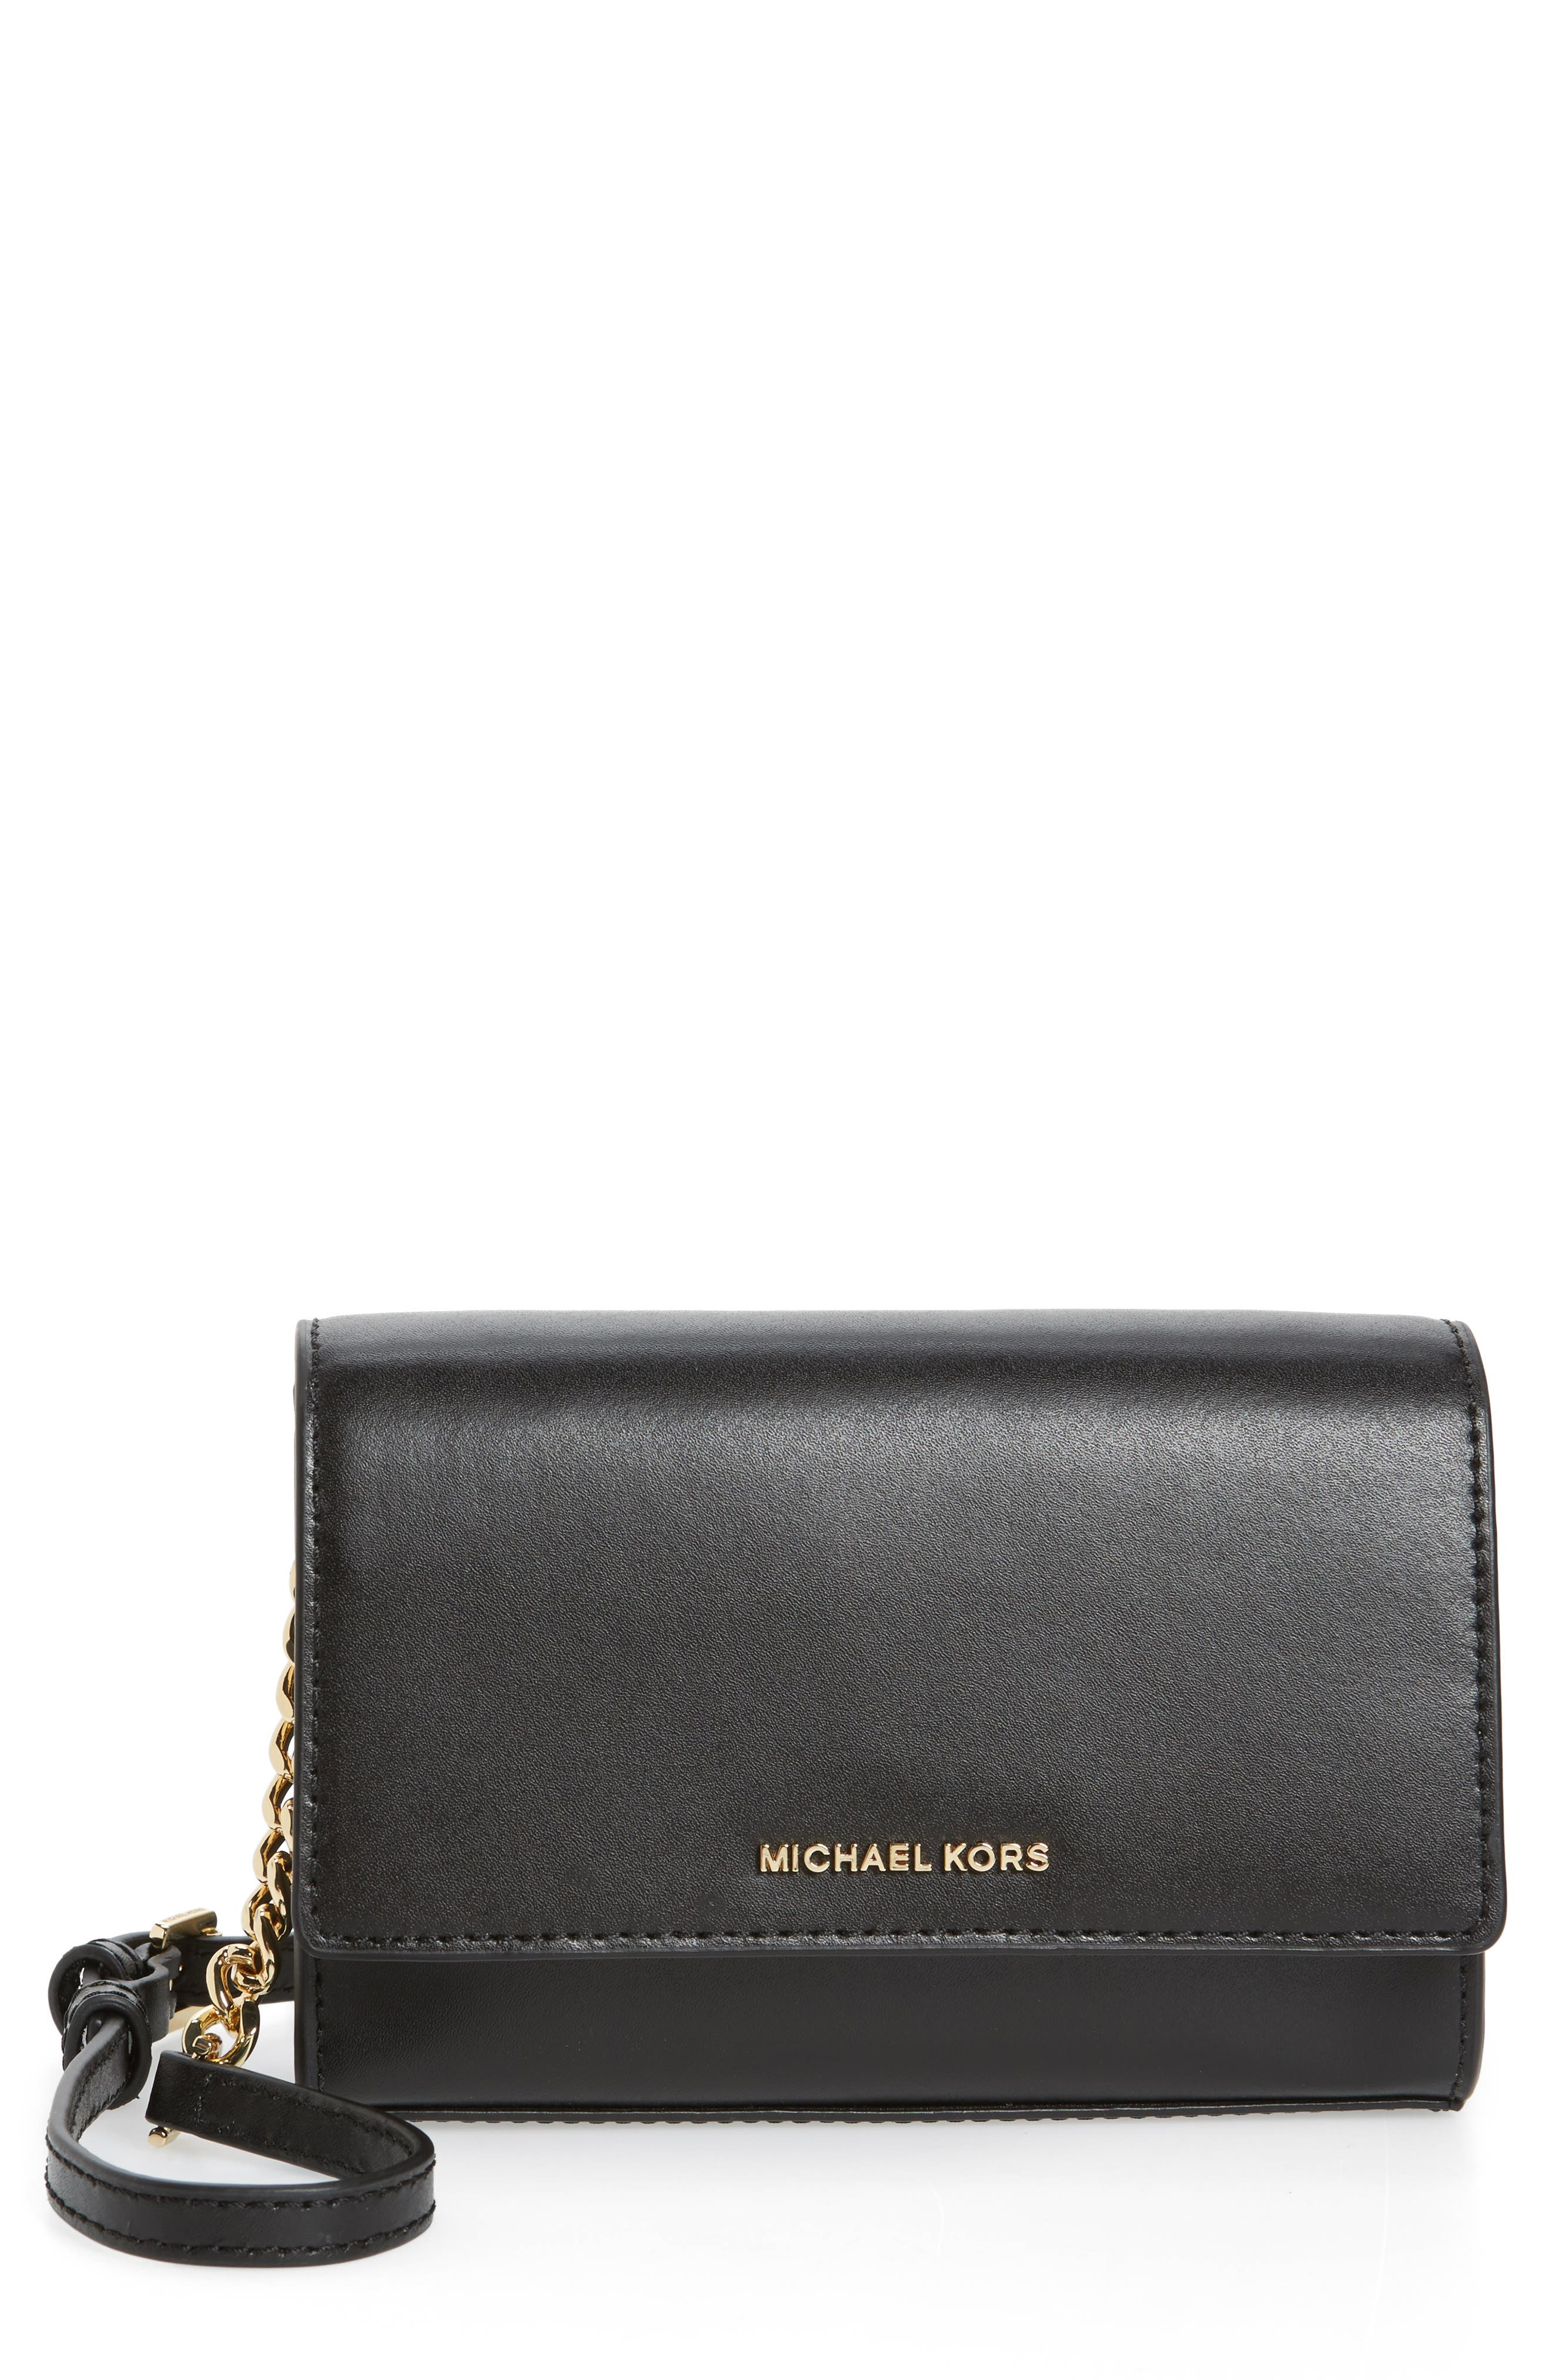 Medium Ruby Convertible Leather Clutch,                             Main thumbnail 1, color,                             001